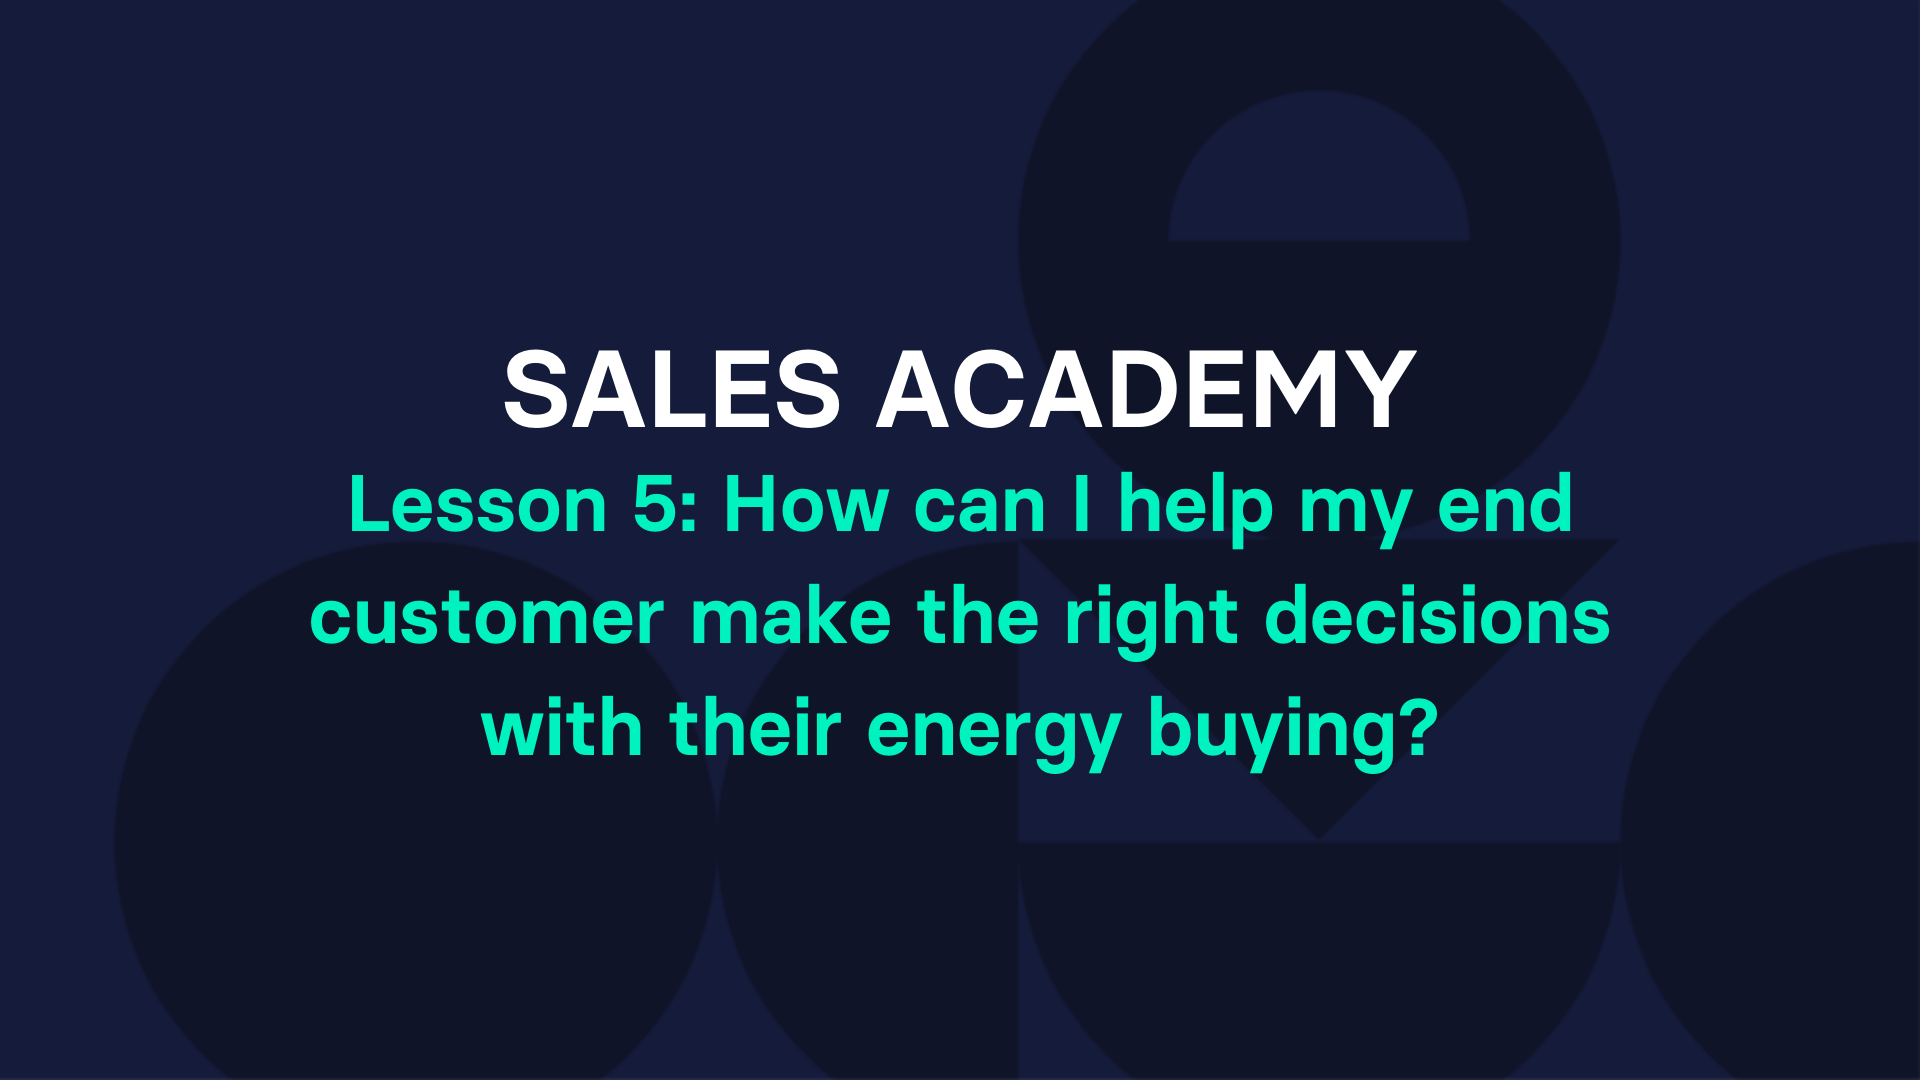 Lesson 5: How can I help my end customer make the right decisions with their energy buying?